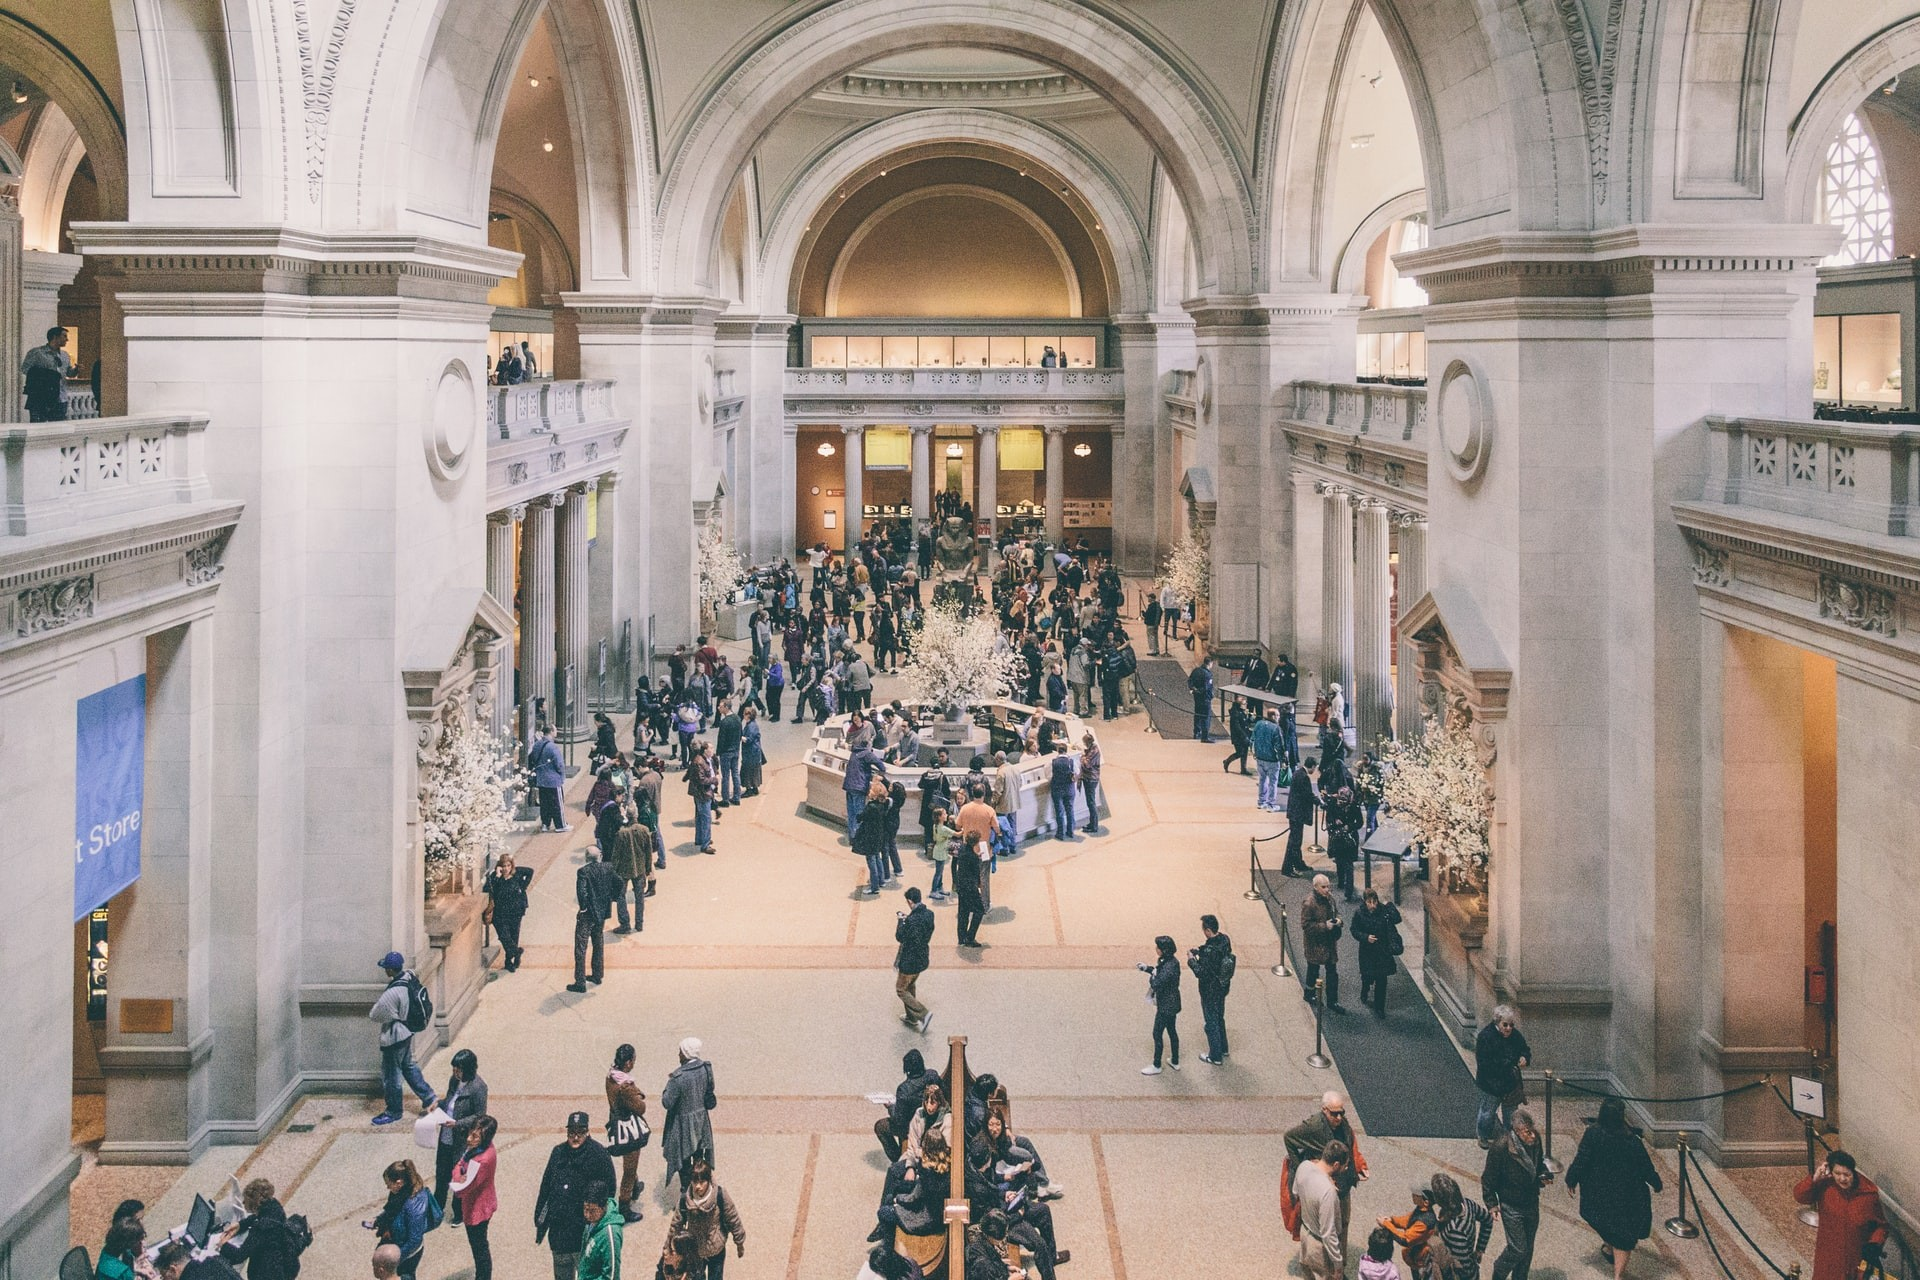 The Great Hall in the Metropolitan Museum of Art in New York City